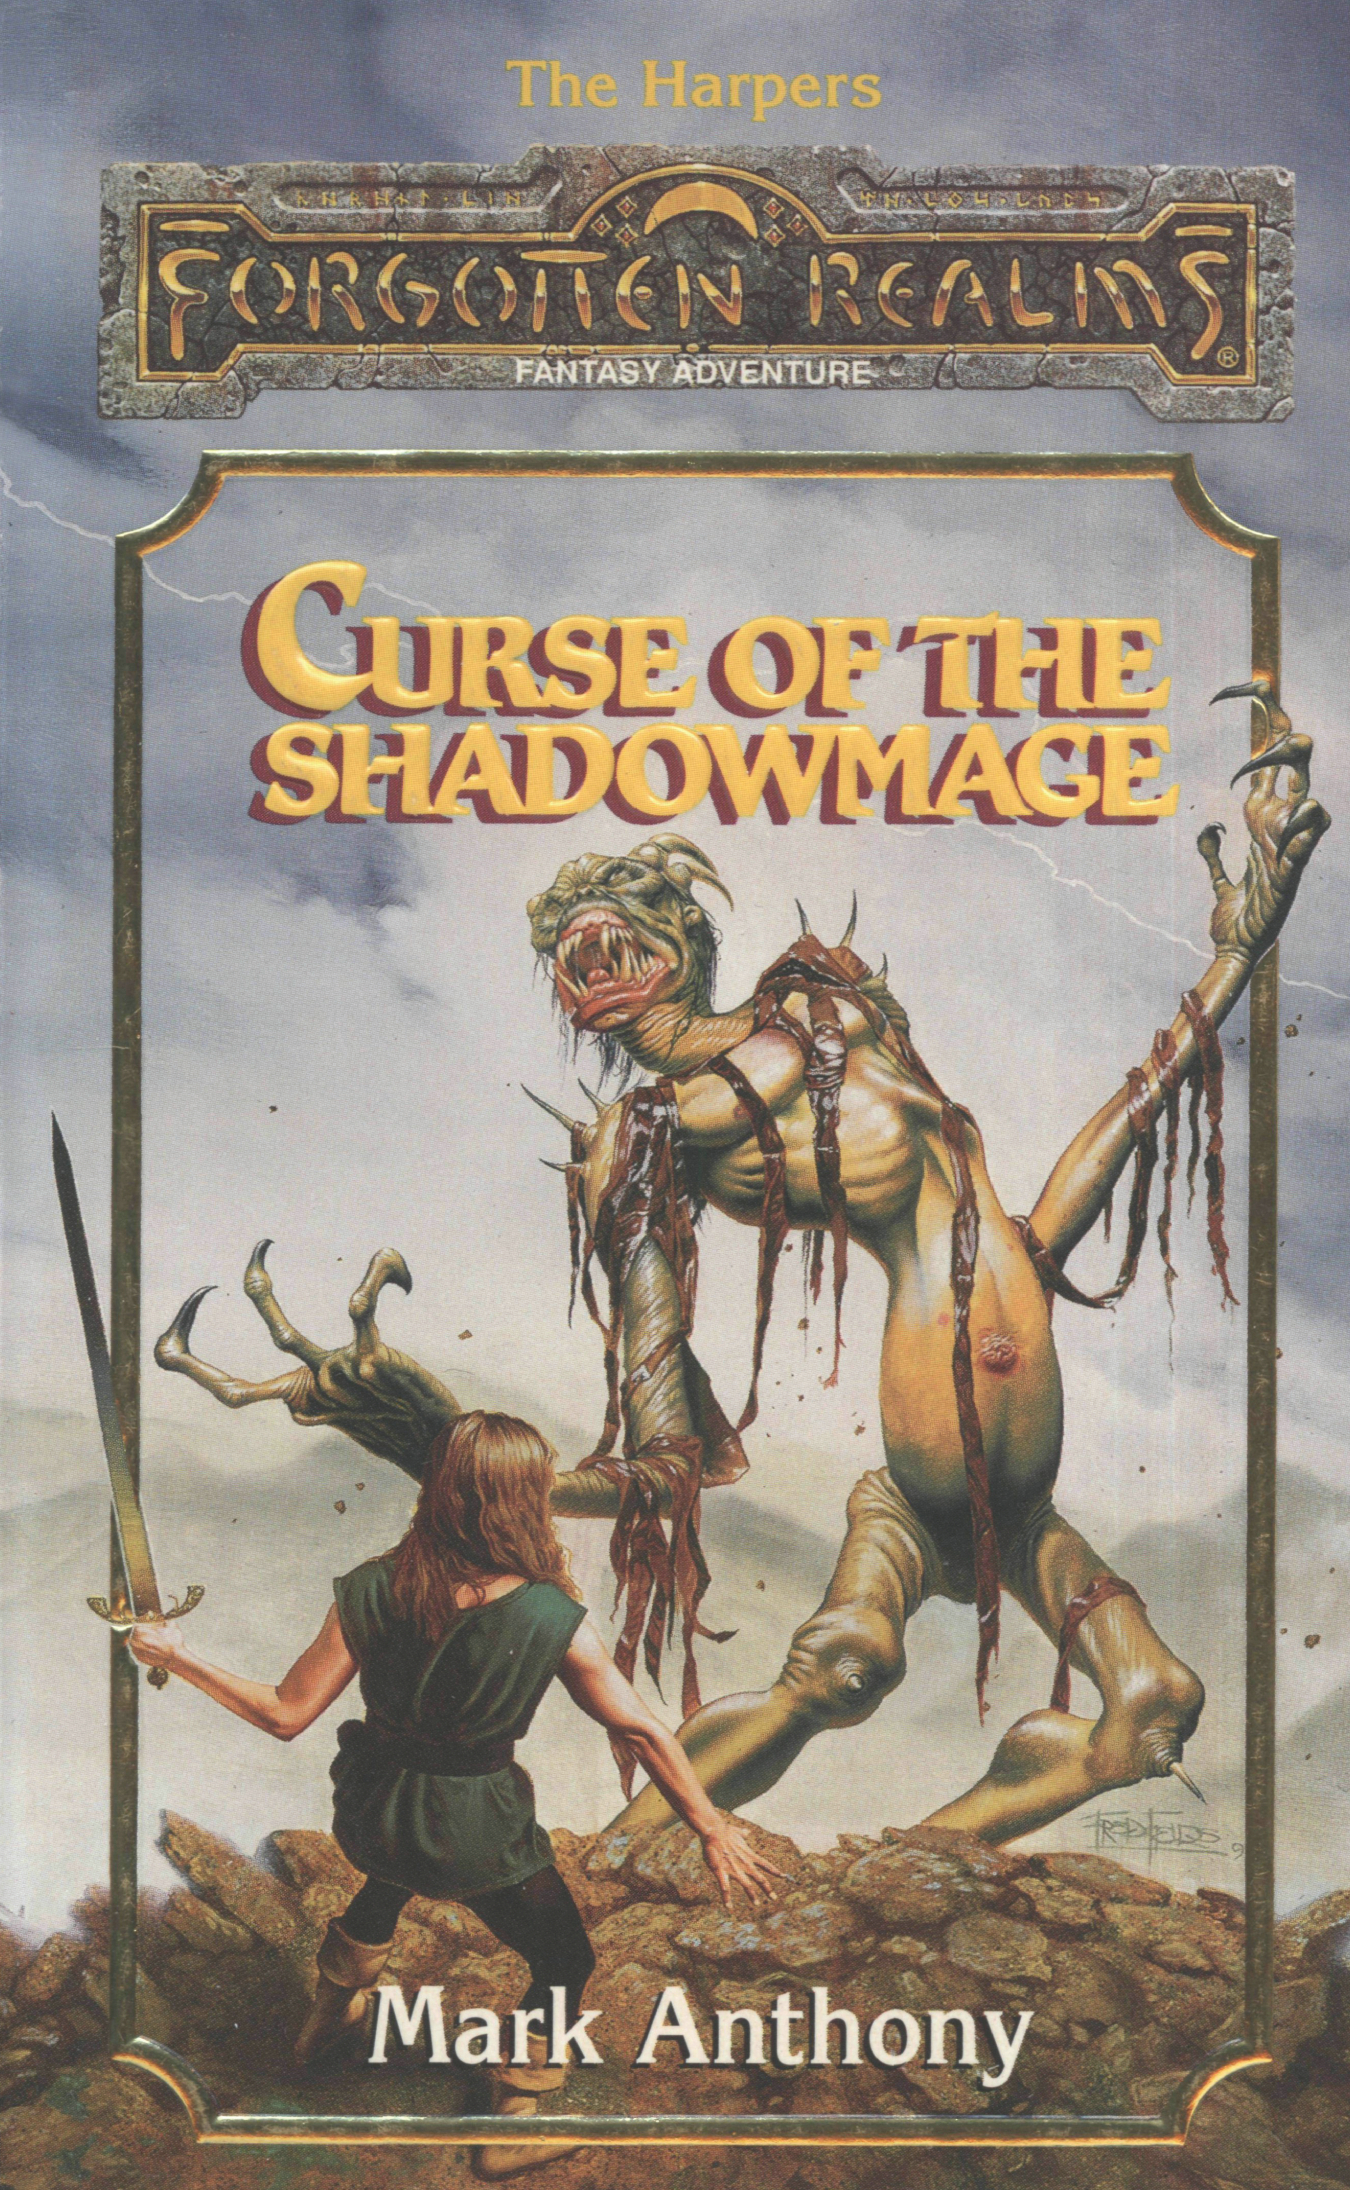 File:Curse of the Shadowmage.jpg